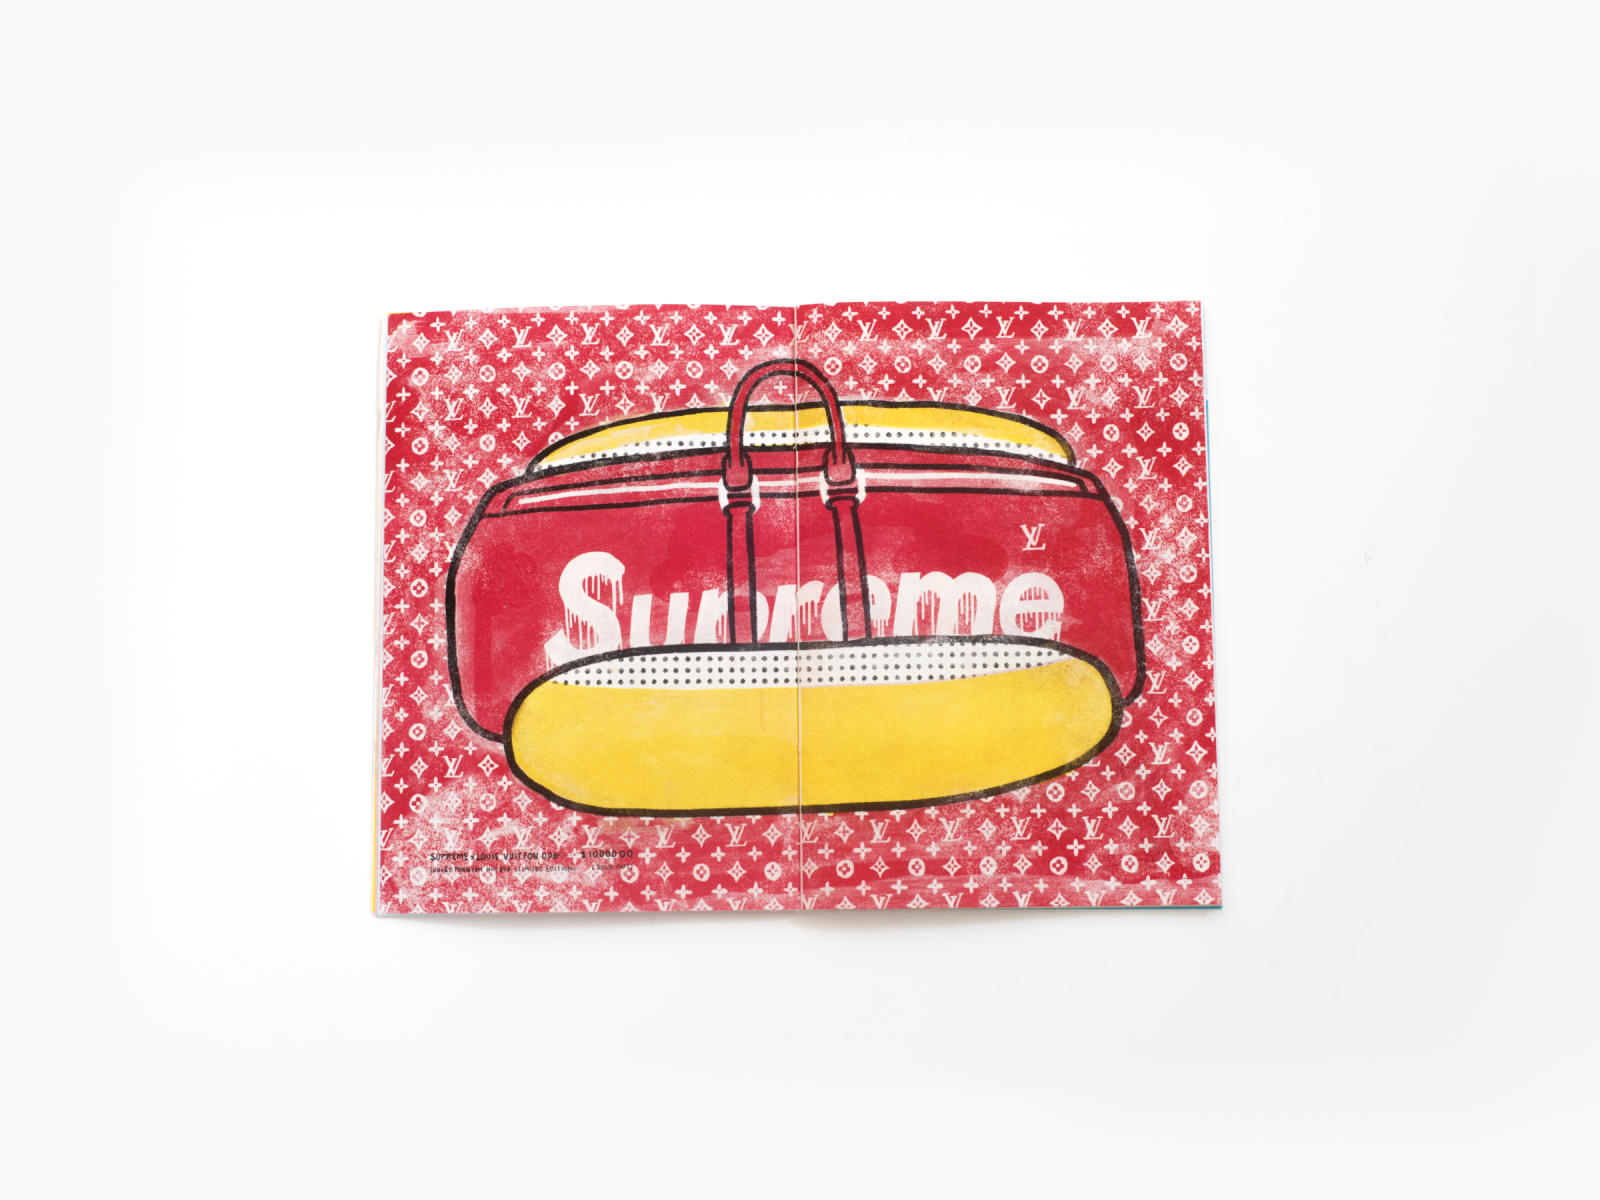 Supreme x Vuitton bag graphics printed by Risograph